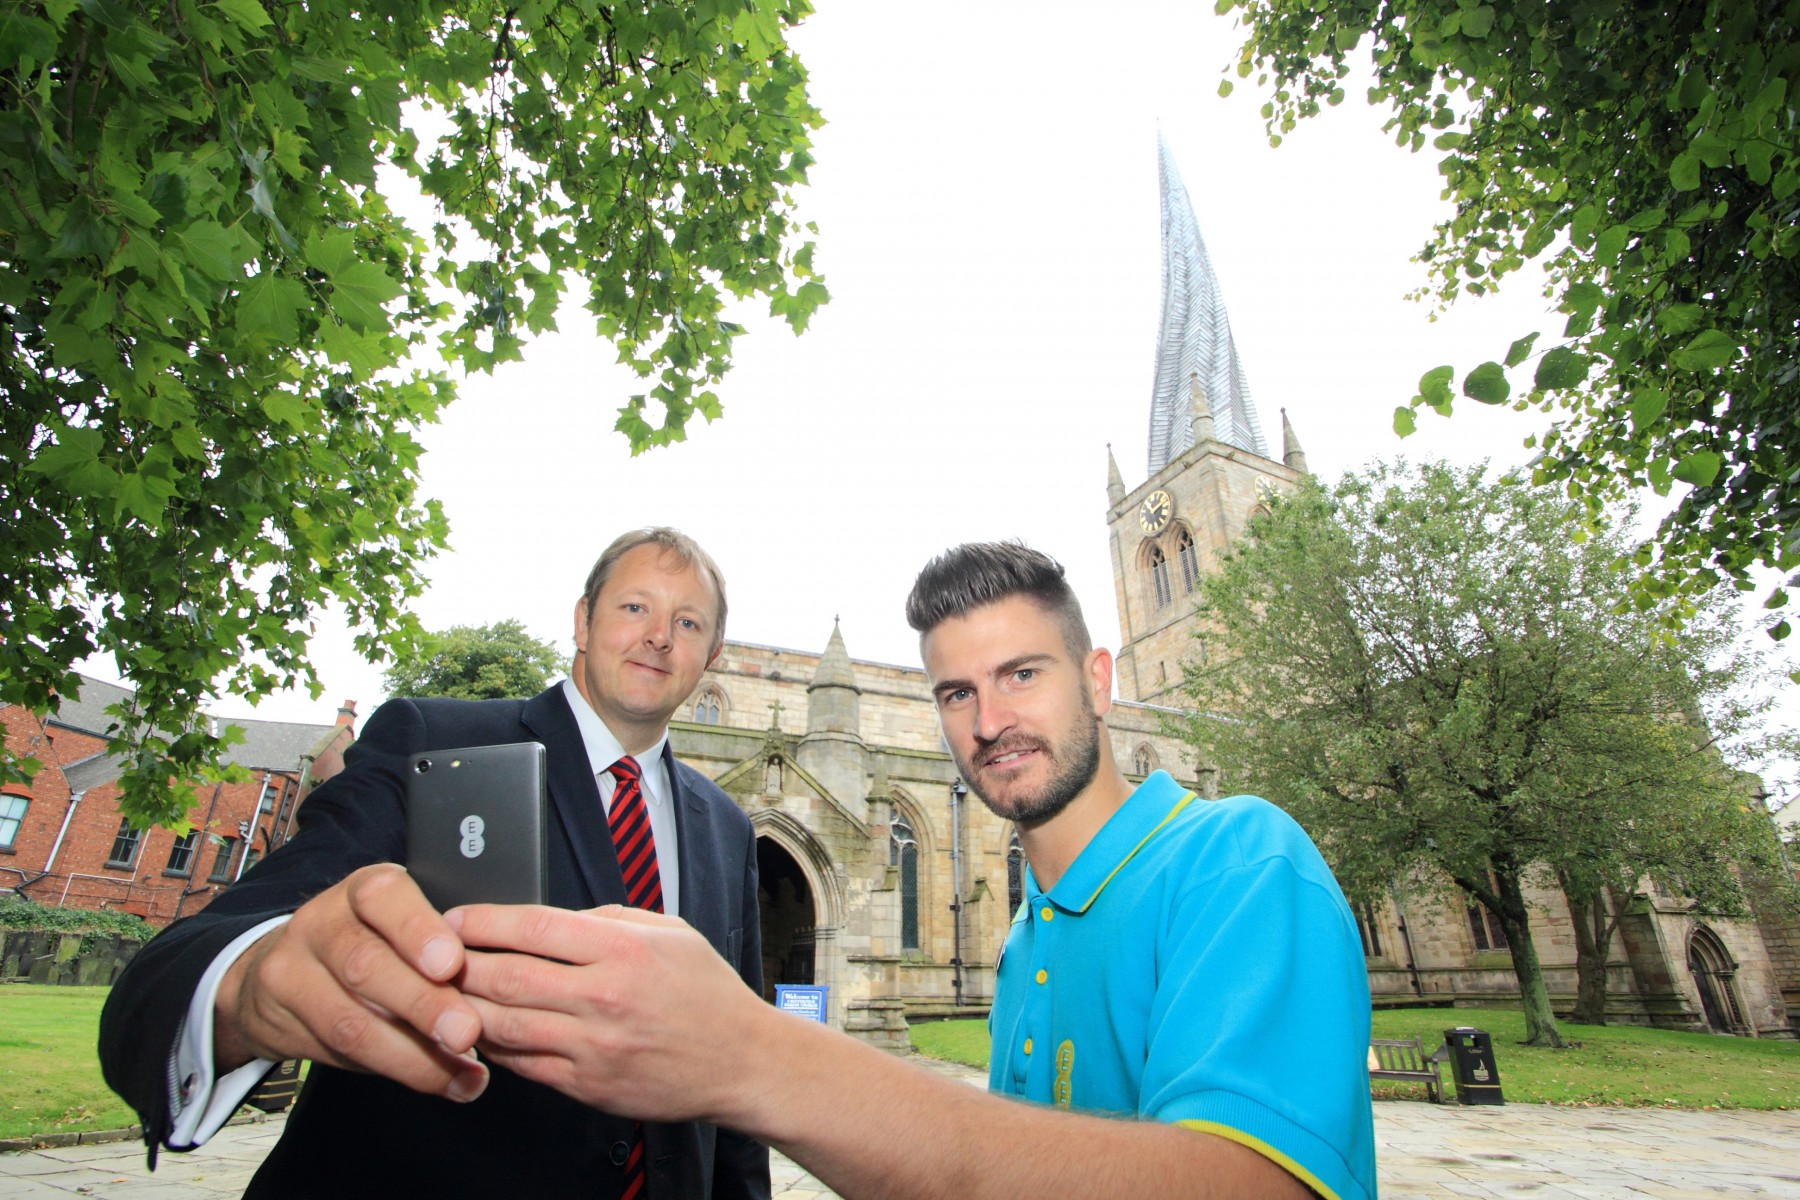 EE launches in Chesterfield - September 2014